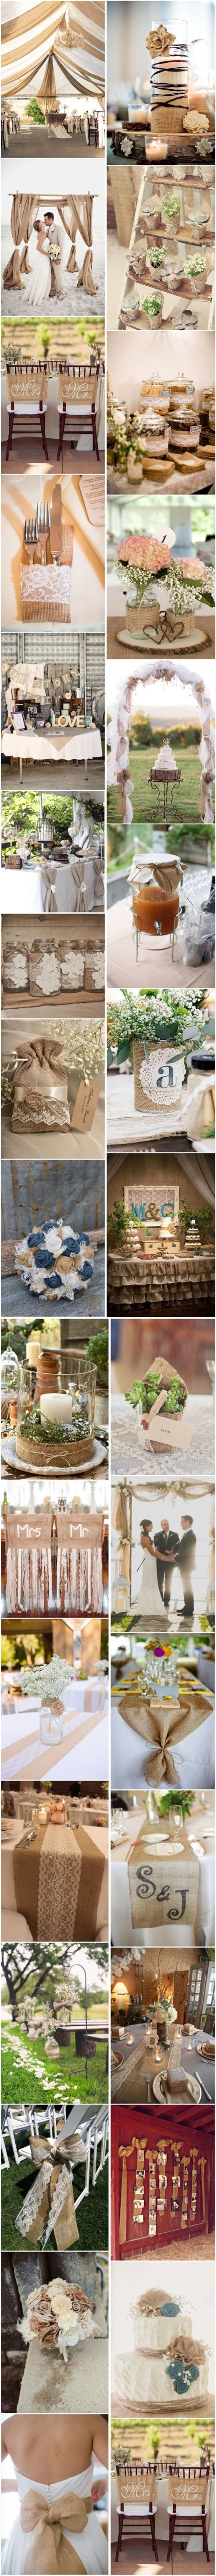 Best 25+ Burlap Wedding Centerpieces Ideas On Pinterest | Burlap Wedding  Showers, Burlap Wedding Decorations And Diy Wedding Decorations